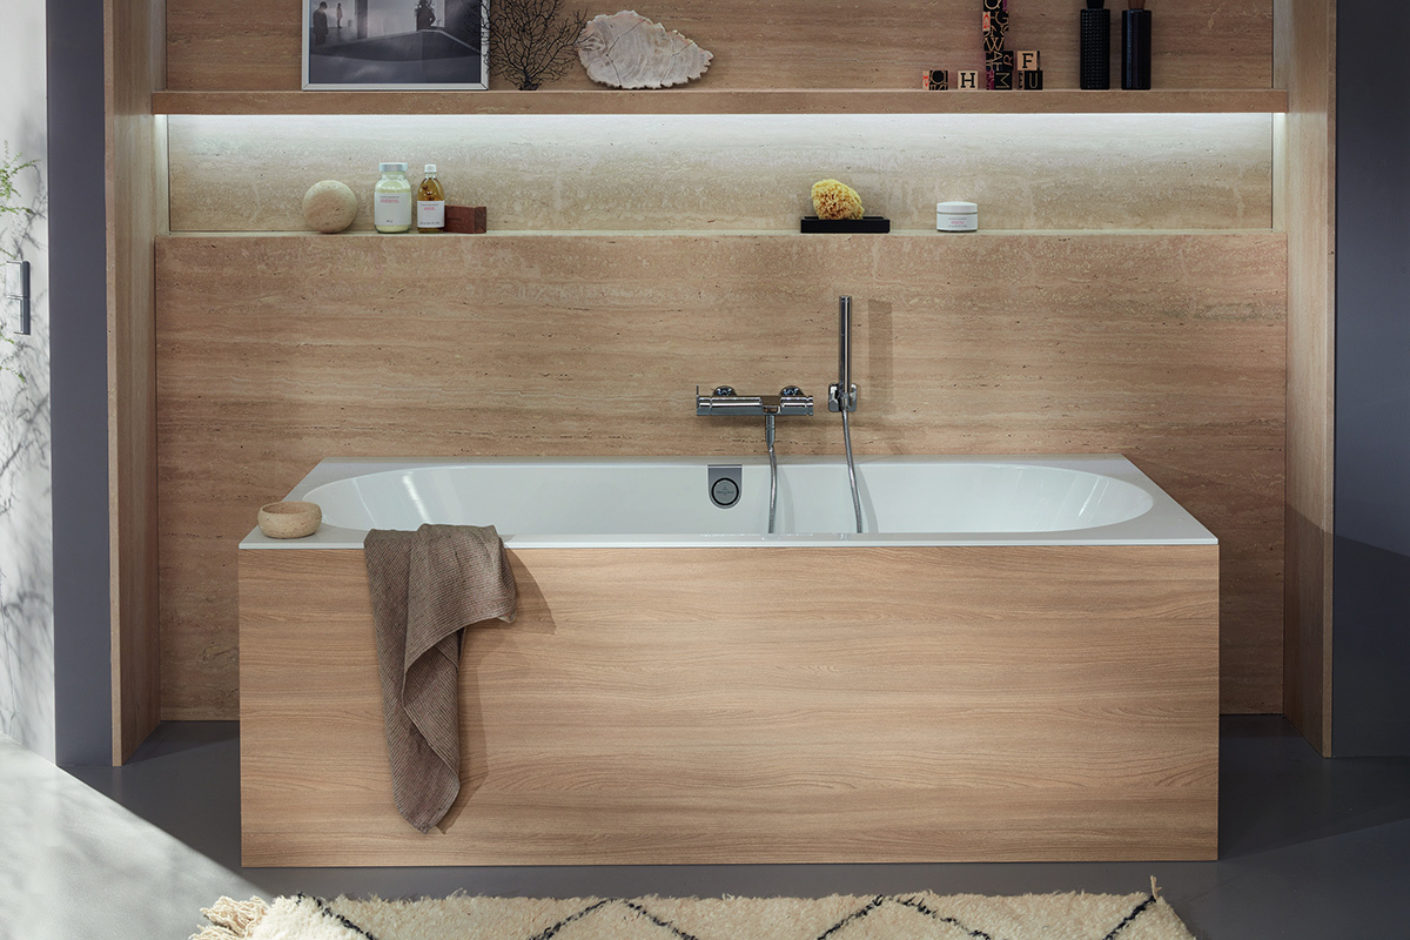 Villeroy & Boch bathtub Oberon with wooden cladding